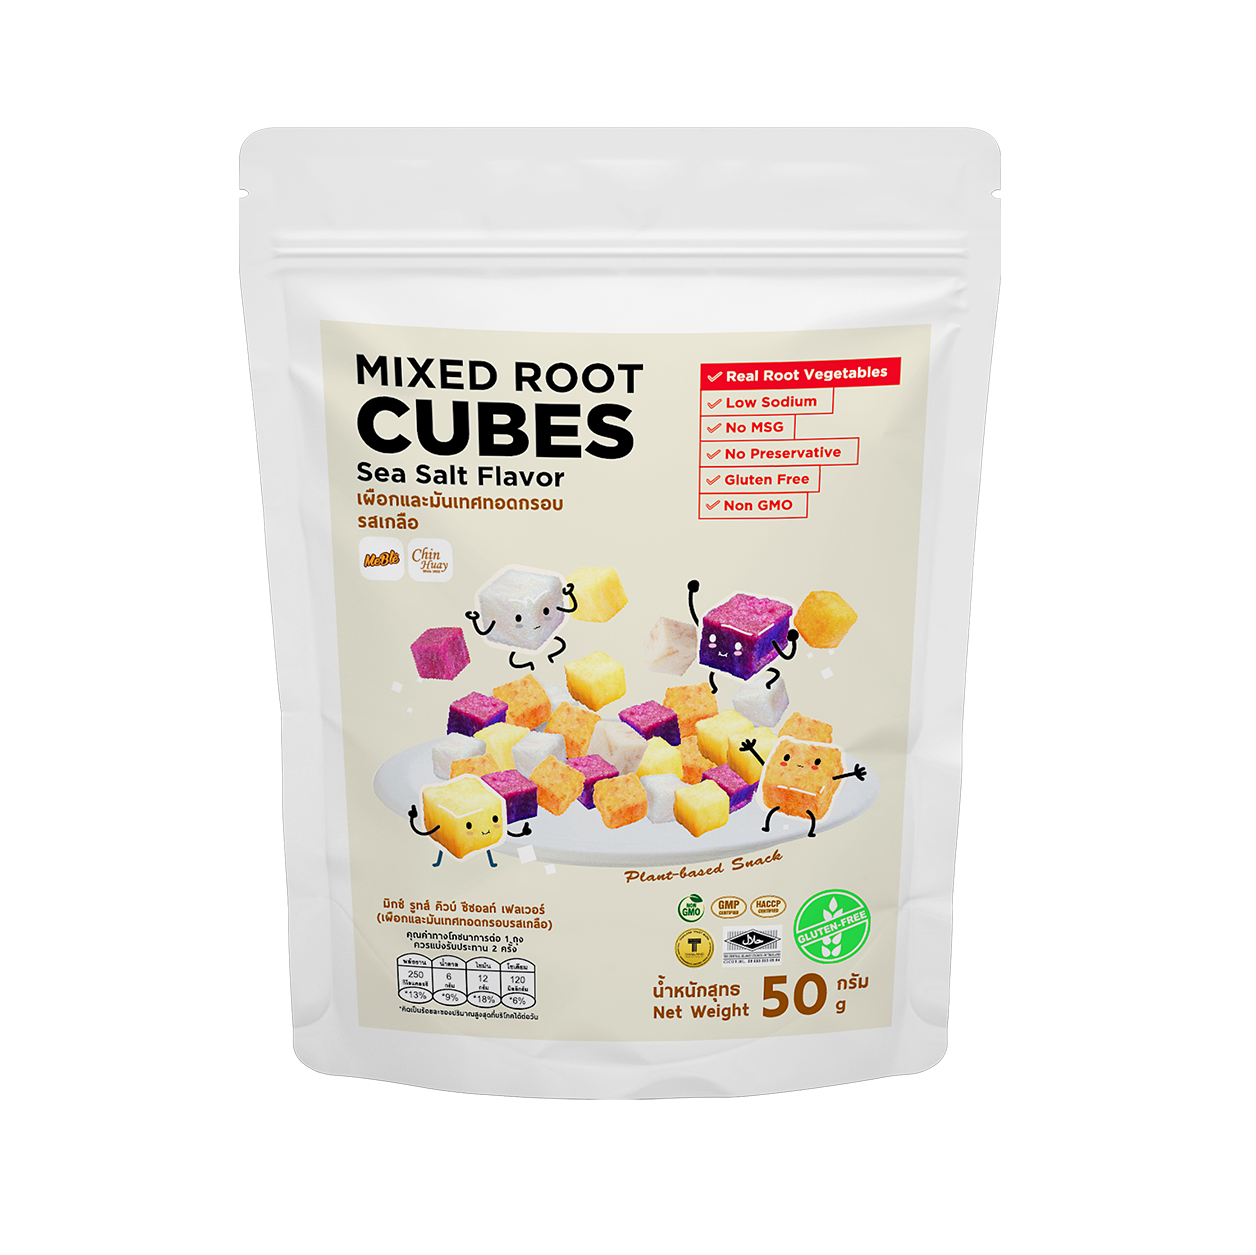 Meble Mixed Root Cubes Chip ผักกรอบ